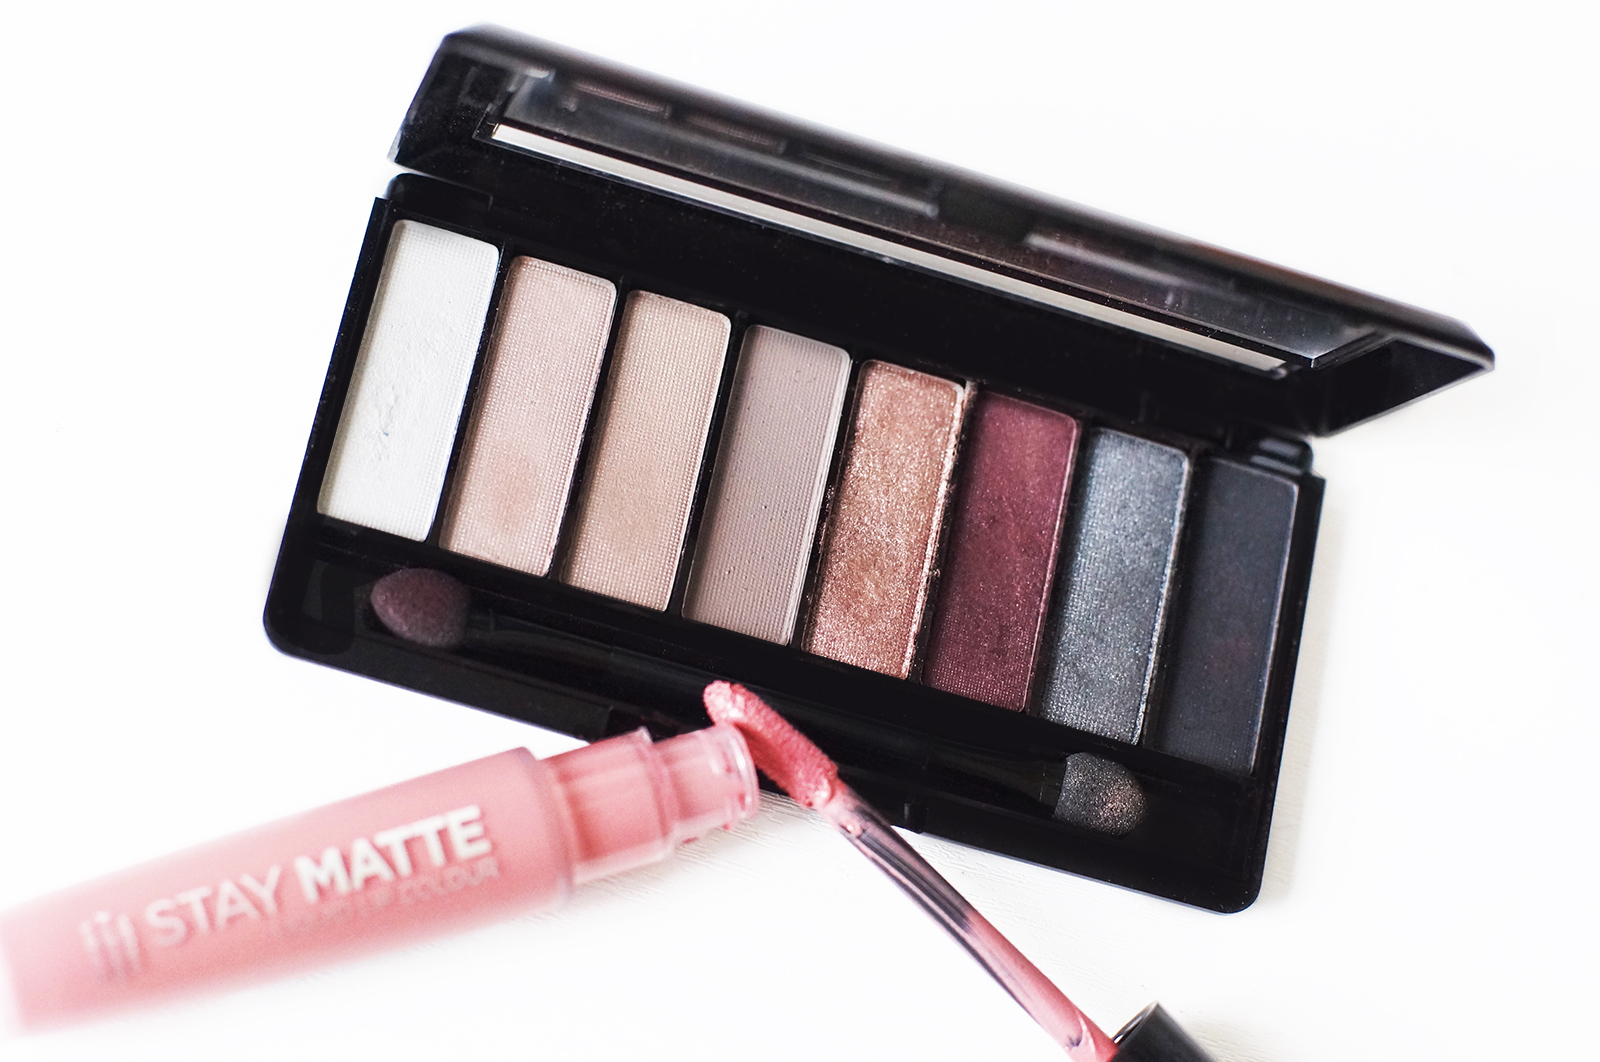 stay matte rimmel 110 blush